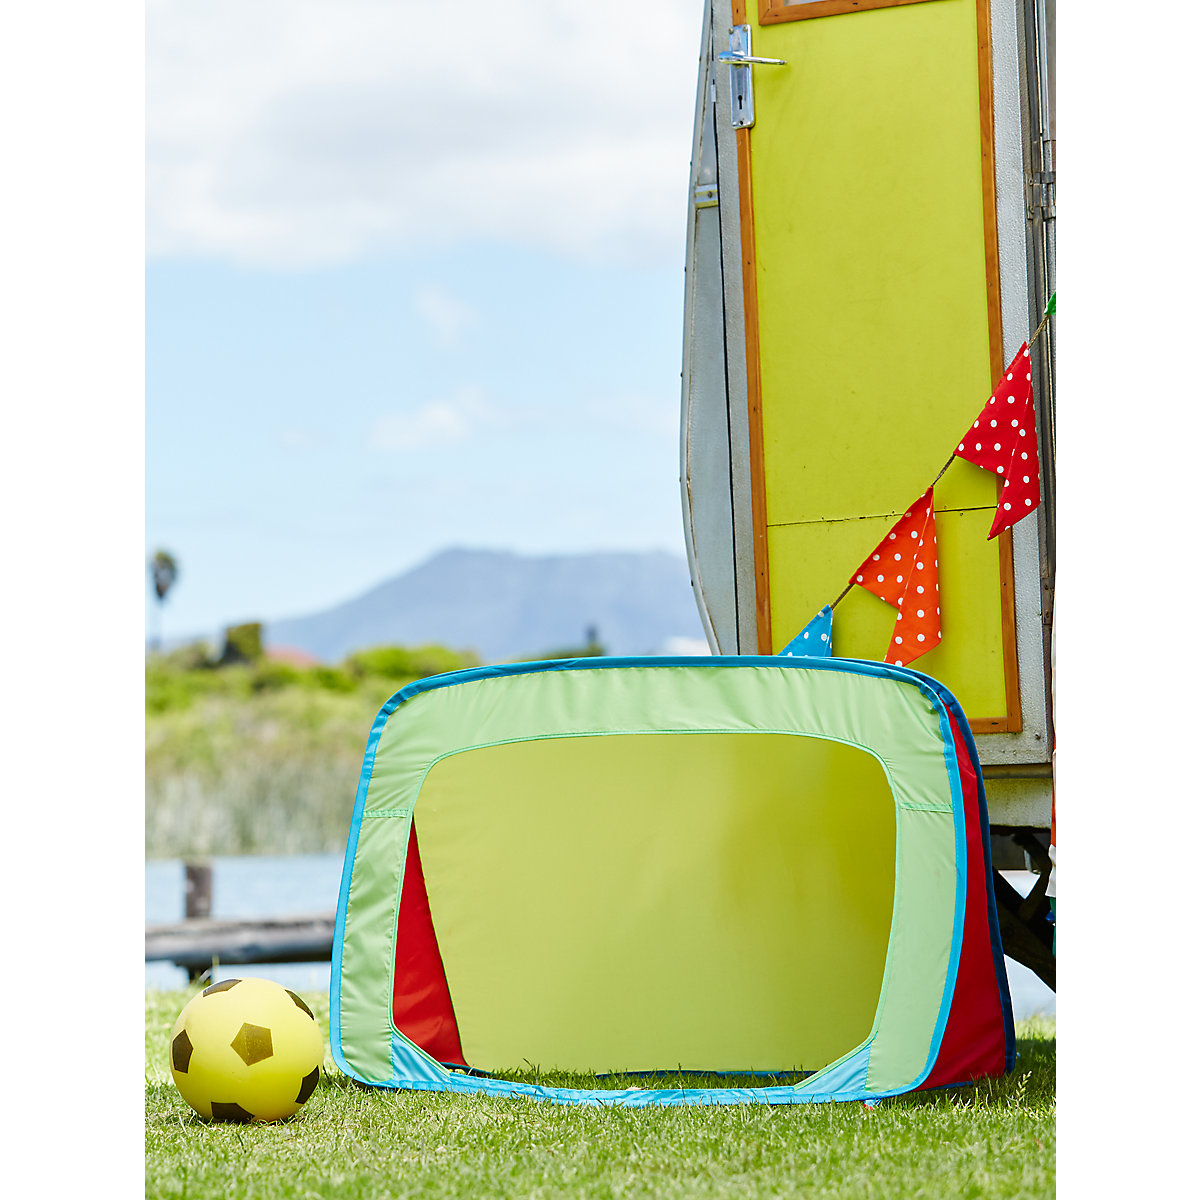 New ELC Boys and Girls Pop Up Football Goal Toy From 2 years - Early Learning Centre Gifts